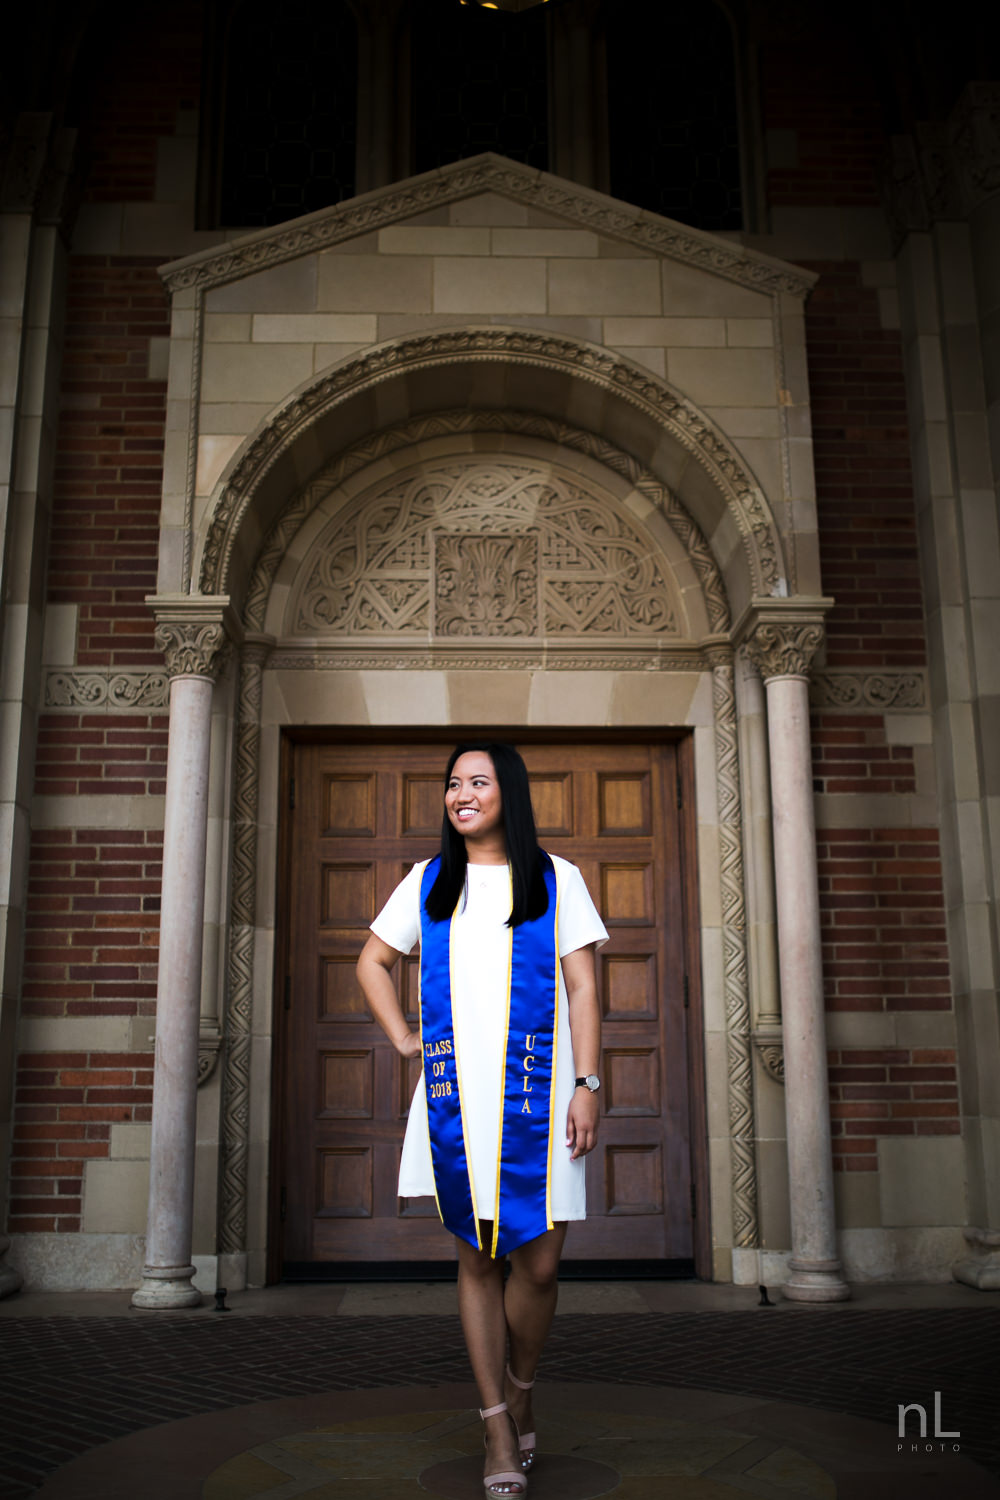 A portrait of a girl in front of the Royce Hall front doors.